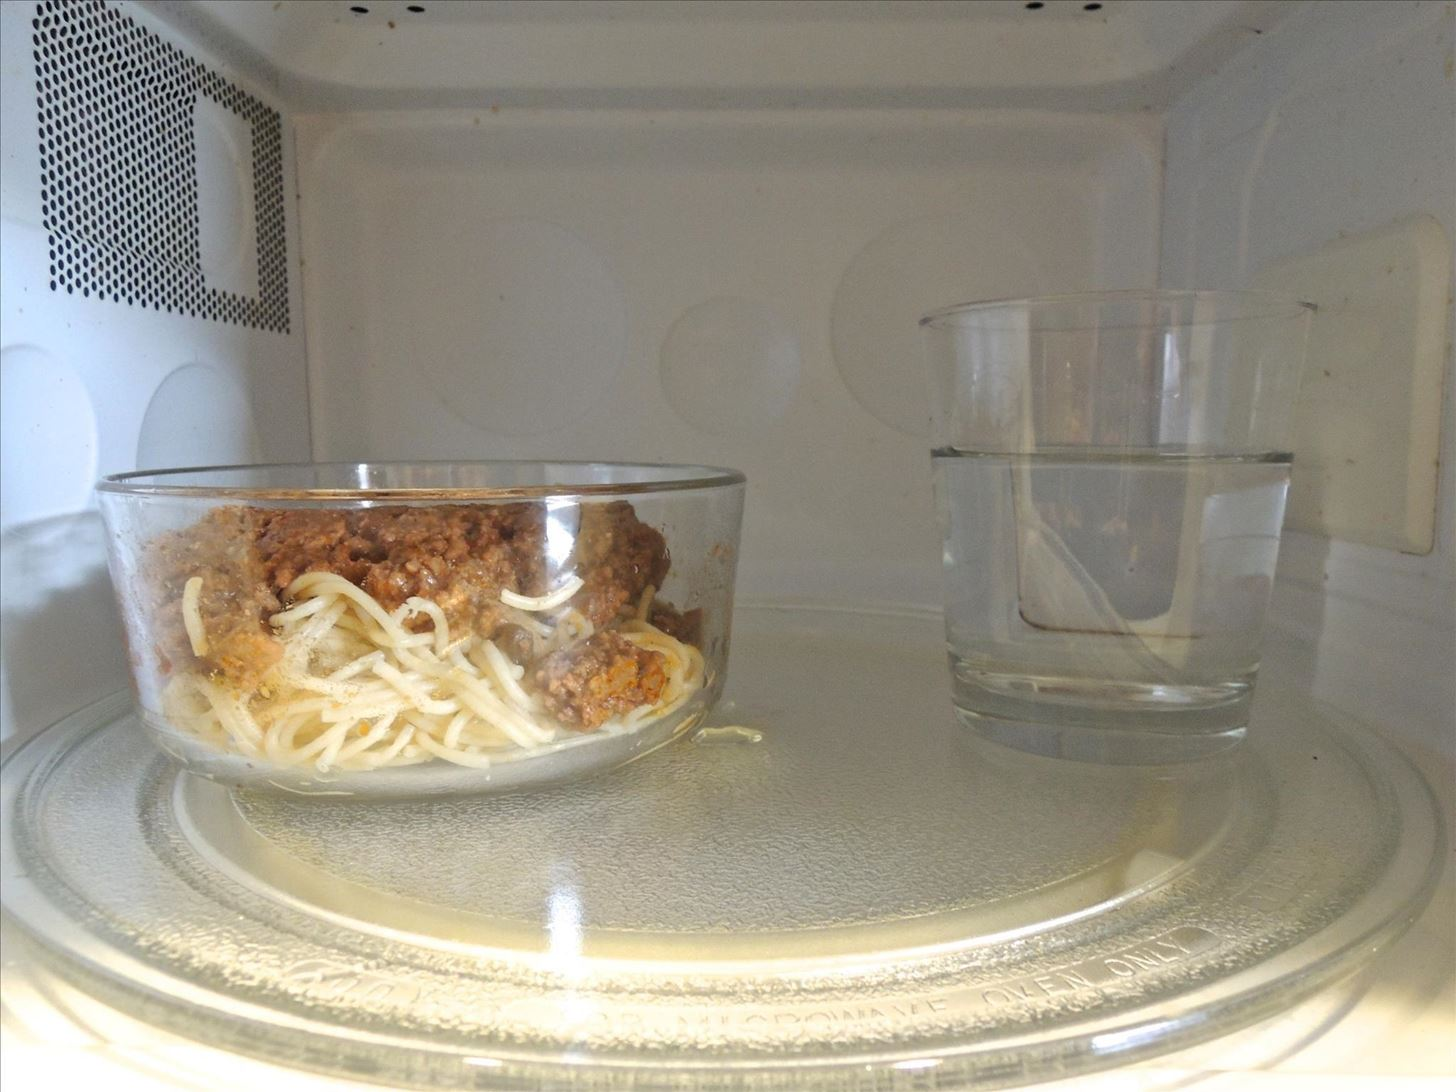 That cup of water will keep the spaghetti from overcooking and drying out. Image by Neil Gonzalez/Food Hacks Daily & 10 Tricks You Need to Use for Better-Tasting Food from Your ...